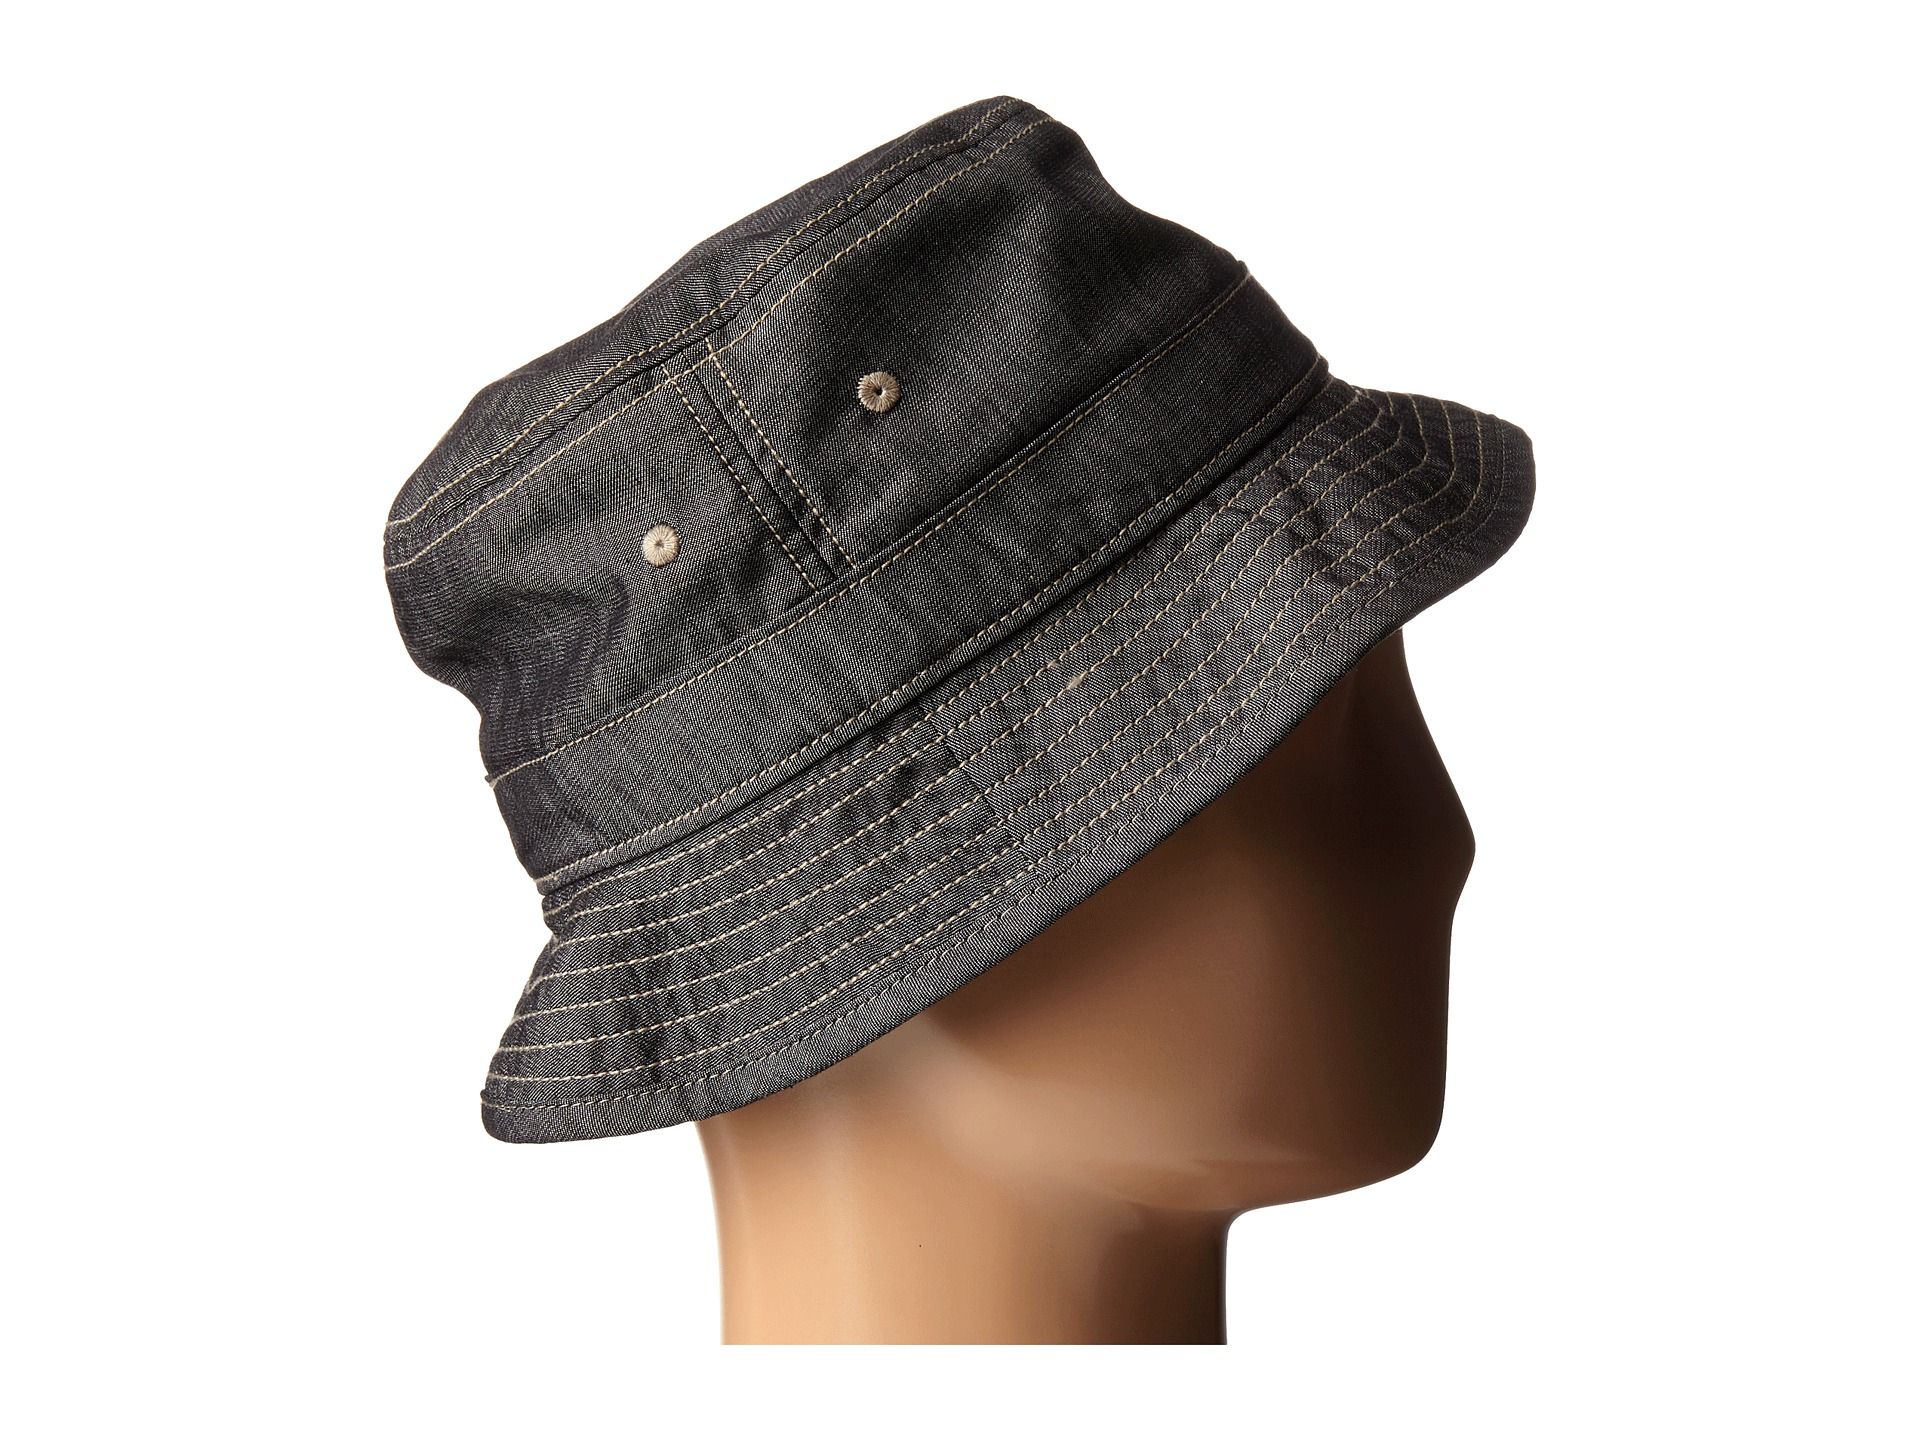 Lyst - Original Penguin Chambray Bucket Hat in Black for Men f9b16361a12